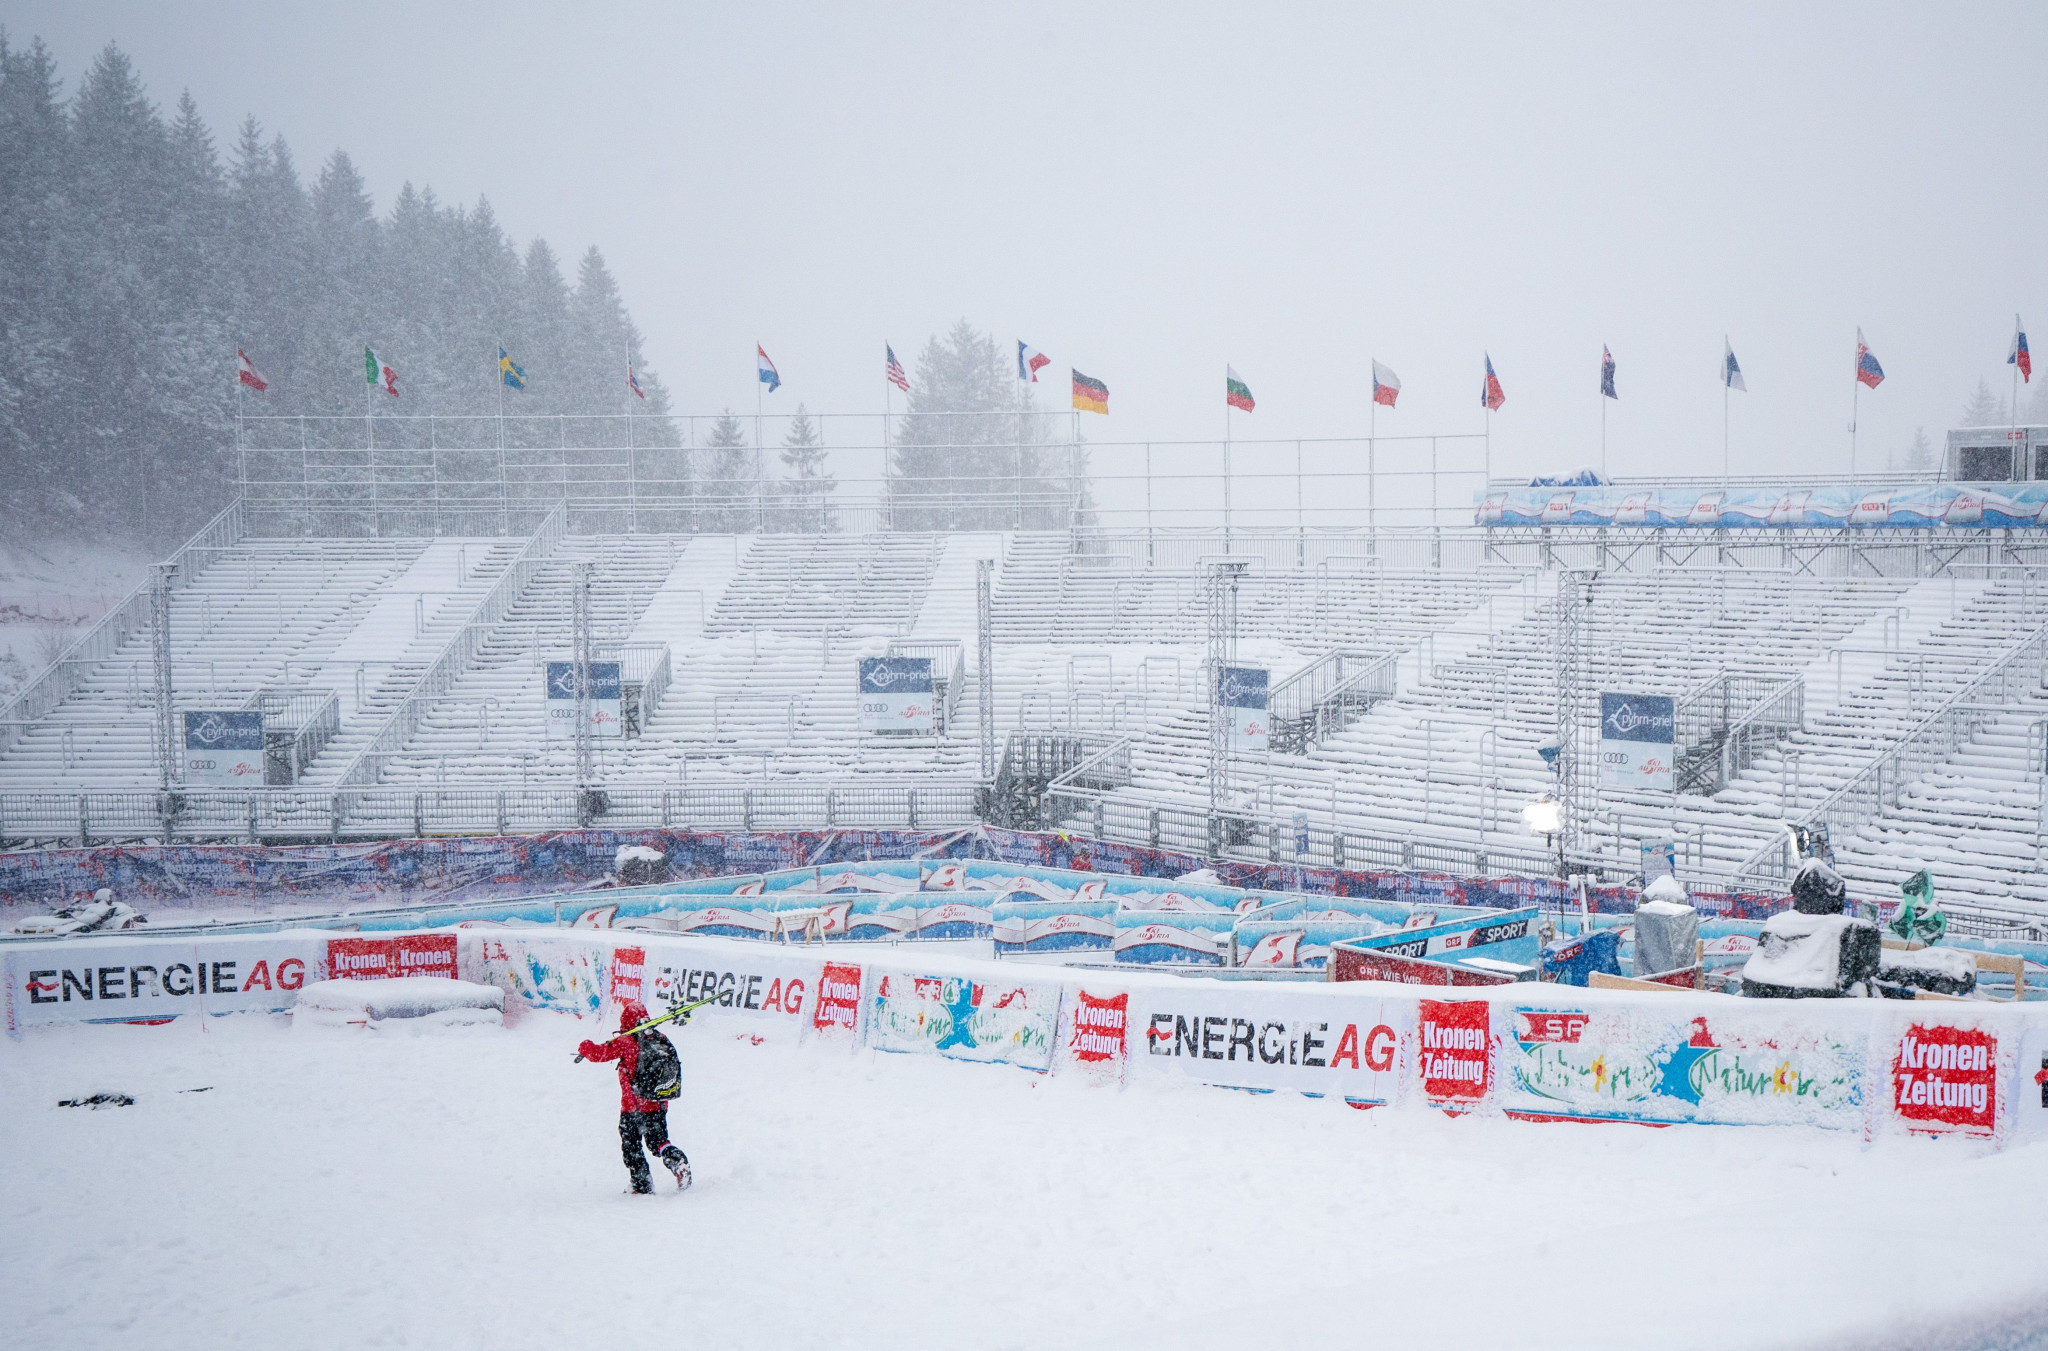 Combined event at FIS Alpine Skiing World Cup in Hinterstoder rescheduled due to weather